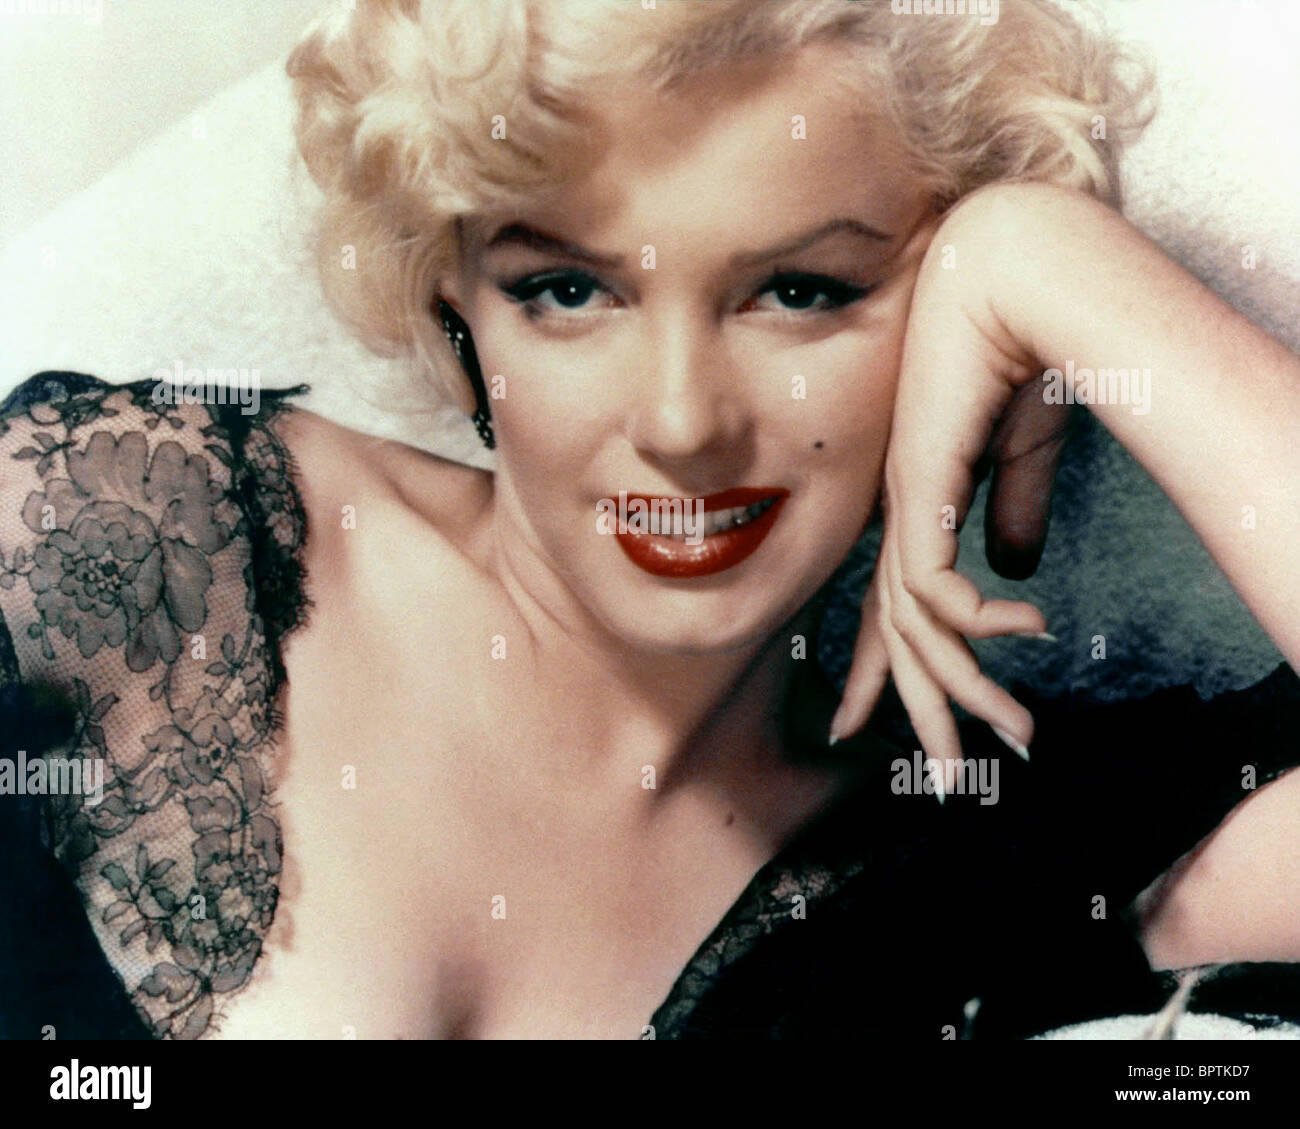 MARILYN MONROE ACTRESS (1957) - Stock Image